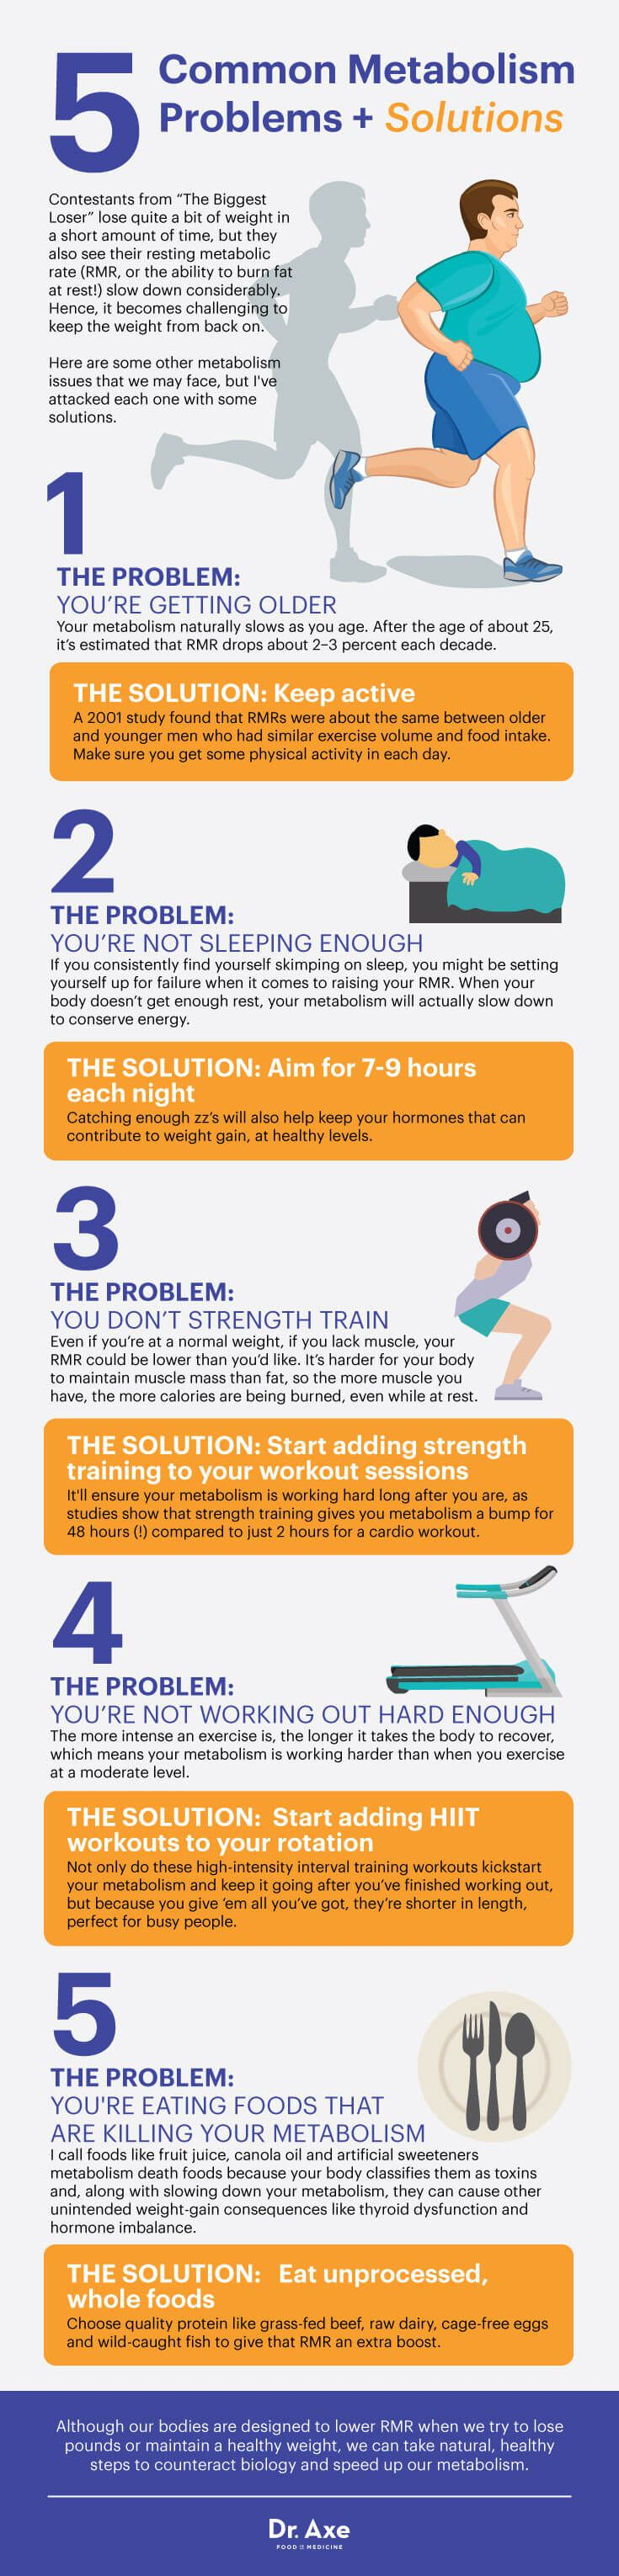 Metabolism solutions - Dr. Axe http://www.draxe.com #health #holistic #natural